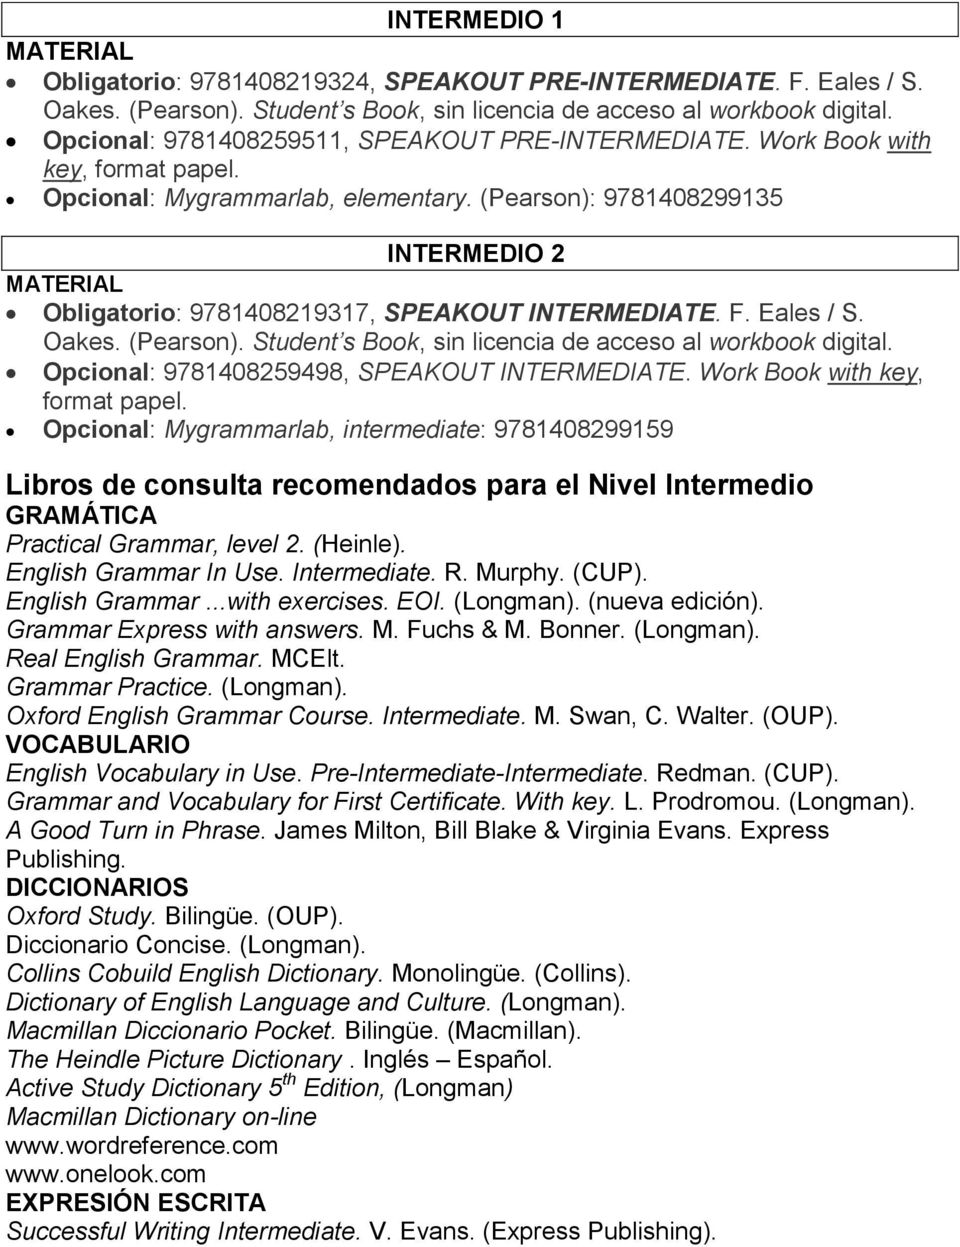 (Pearson): 9781408299135 INTERMEDIO 2 Obligatorio: 9781408219317, SPEAKOUT INTERMEDIATE. F. Eales / S. Oakes. (Pearson). Student s Book, sin licencia de acceso al workbook digital.